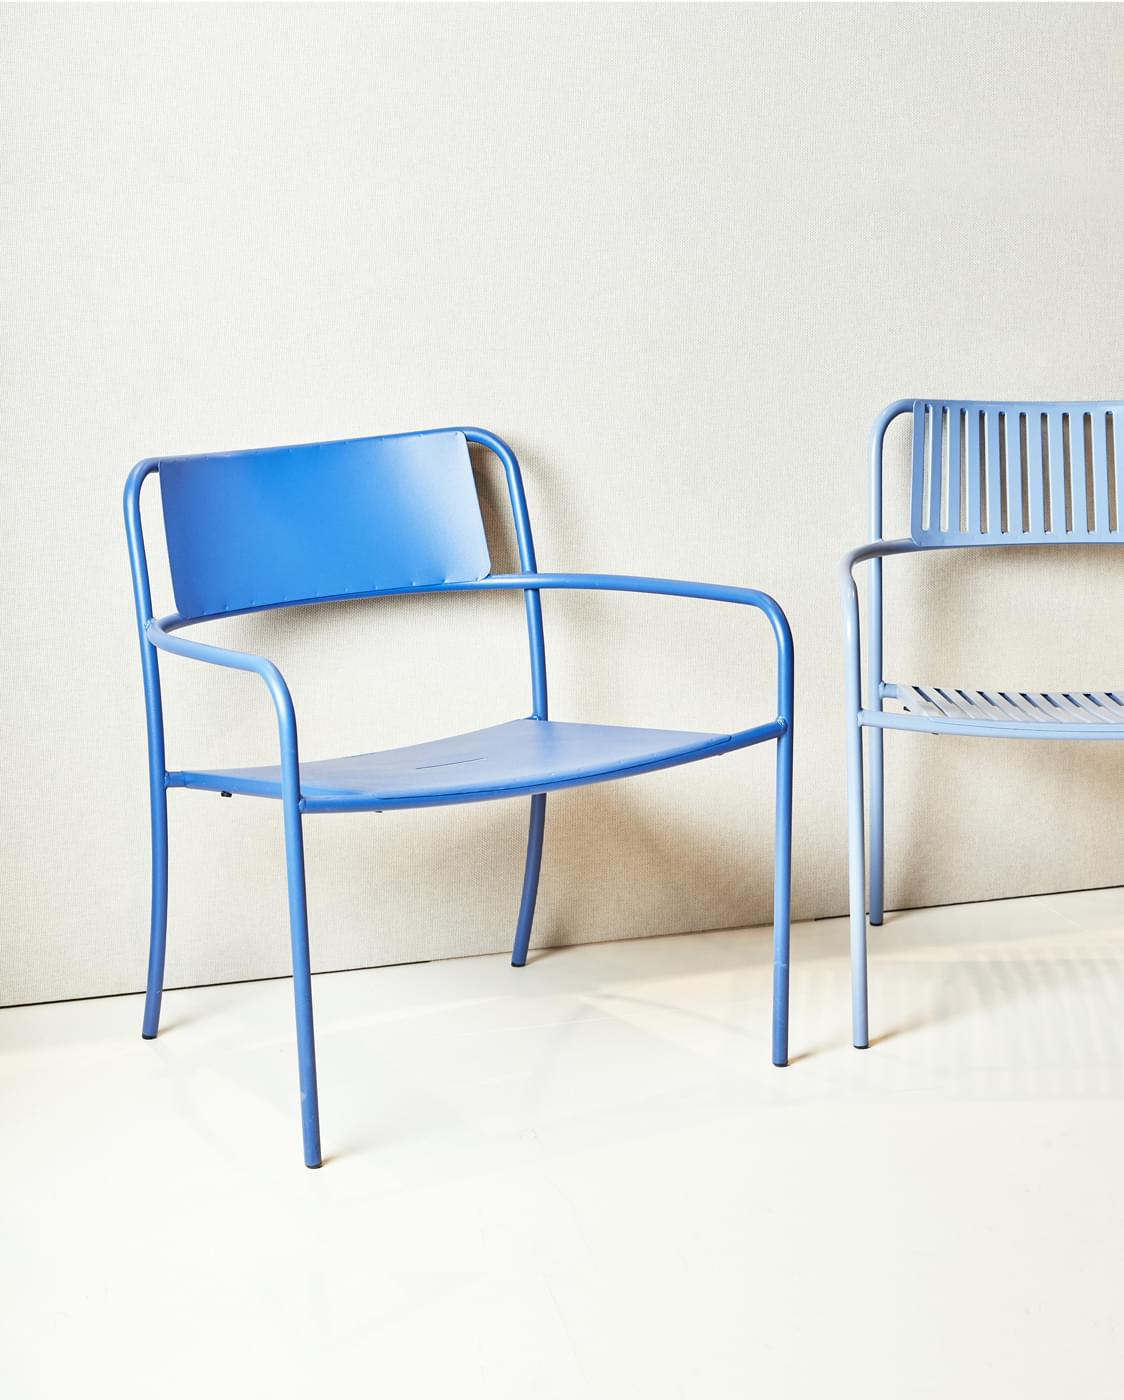 Chaises extérieures bleues en inox Tolix made in France